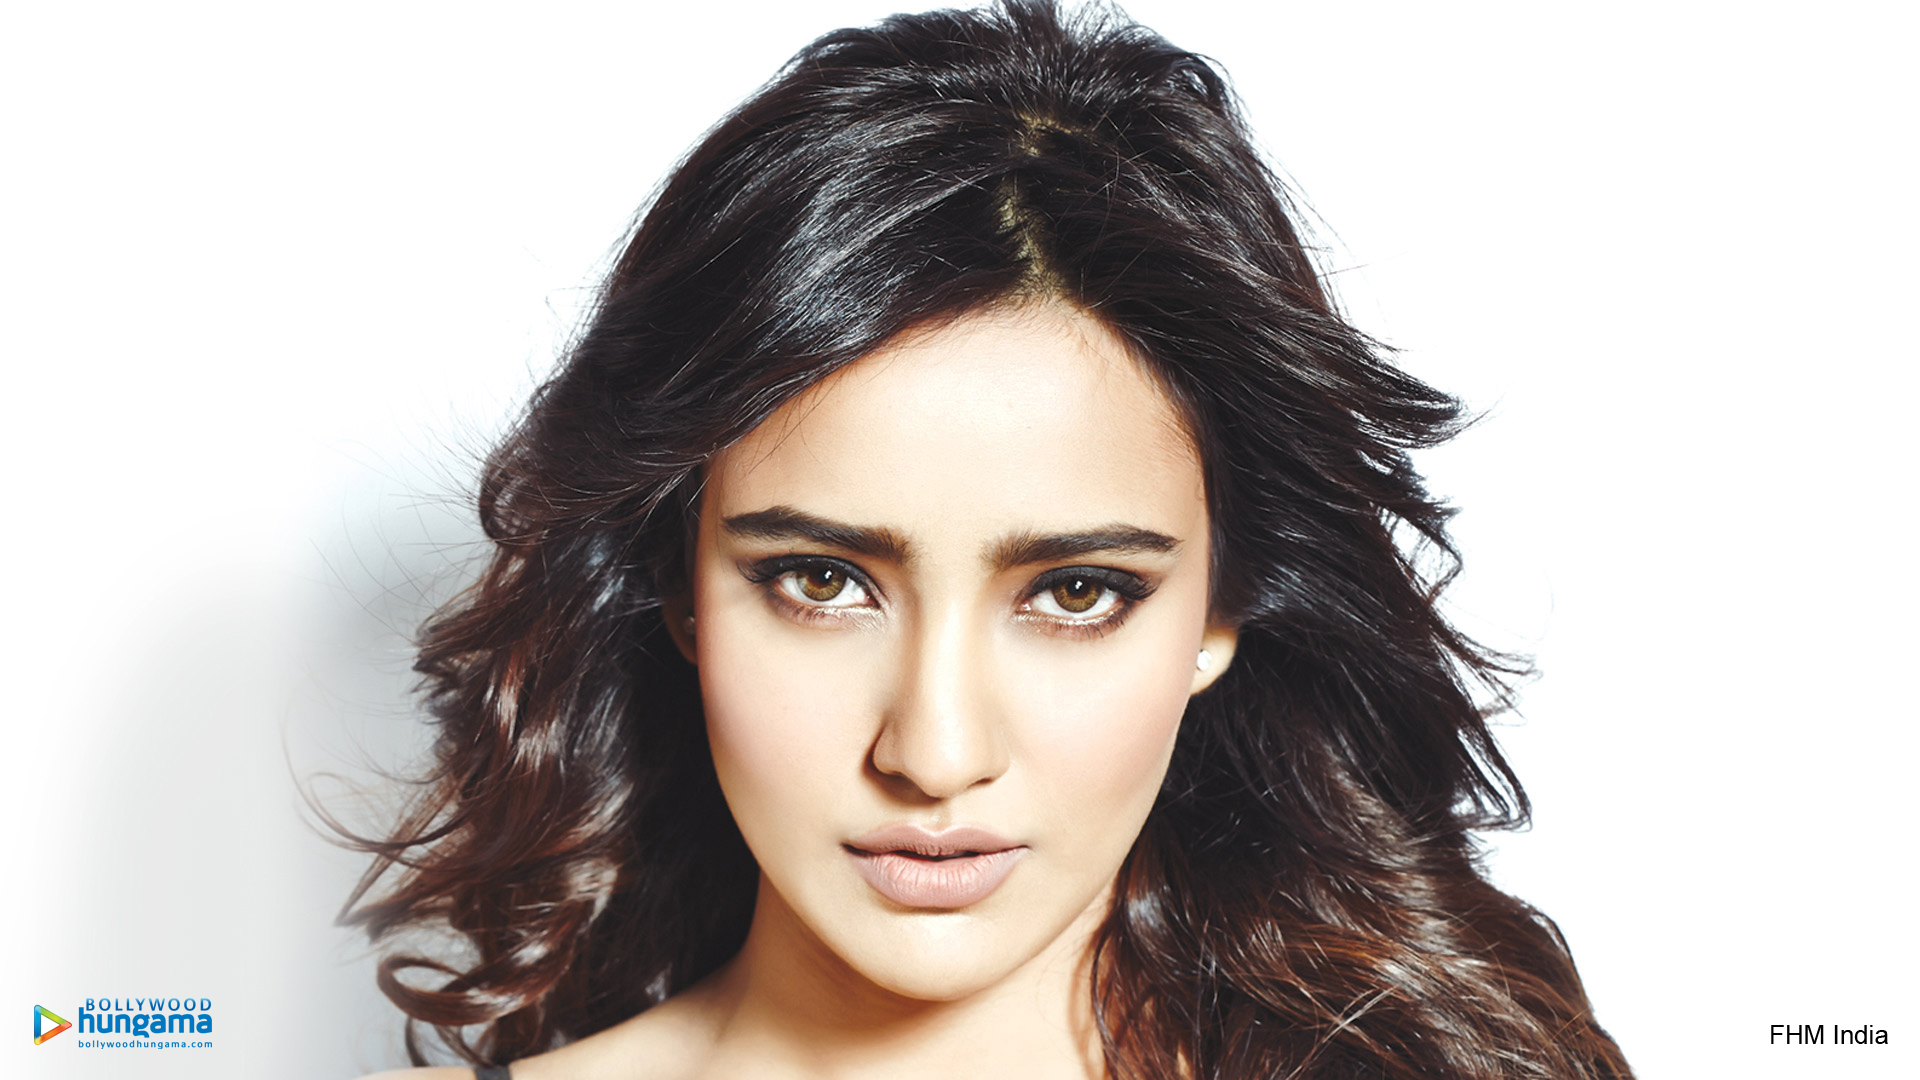 Neha Sharma nudes (55 photo), Tits, Hot, Feet, in bikini 2020